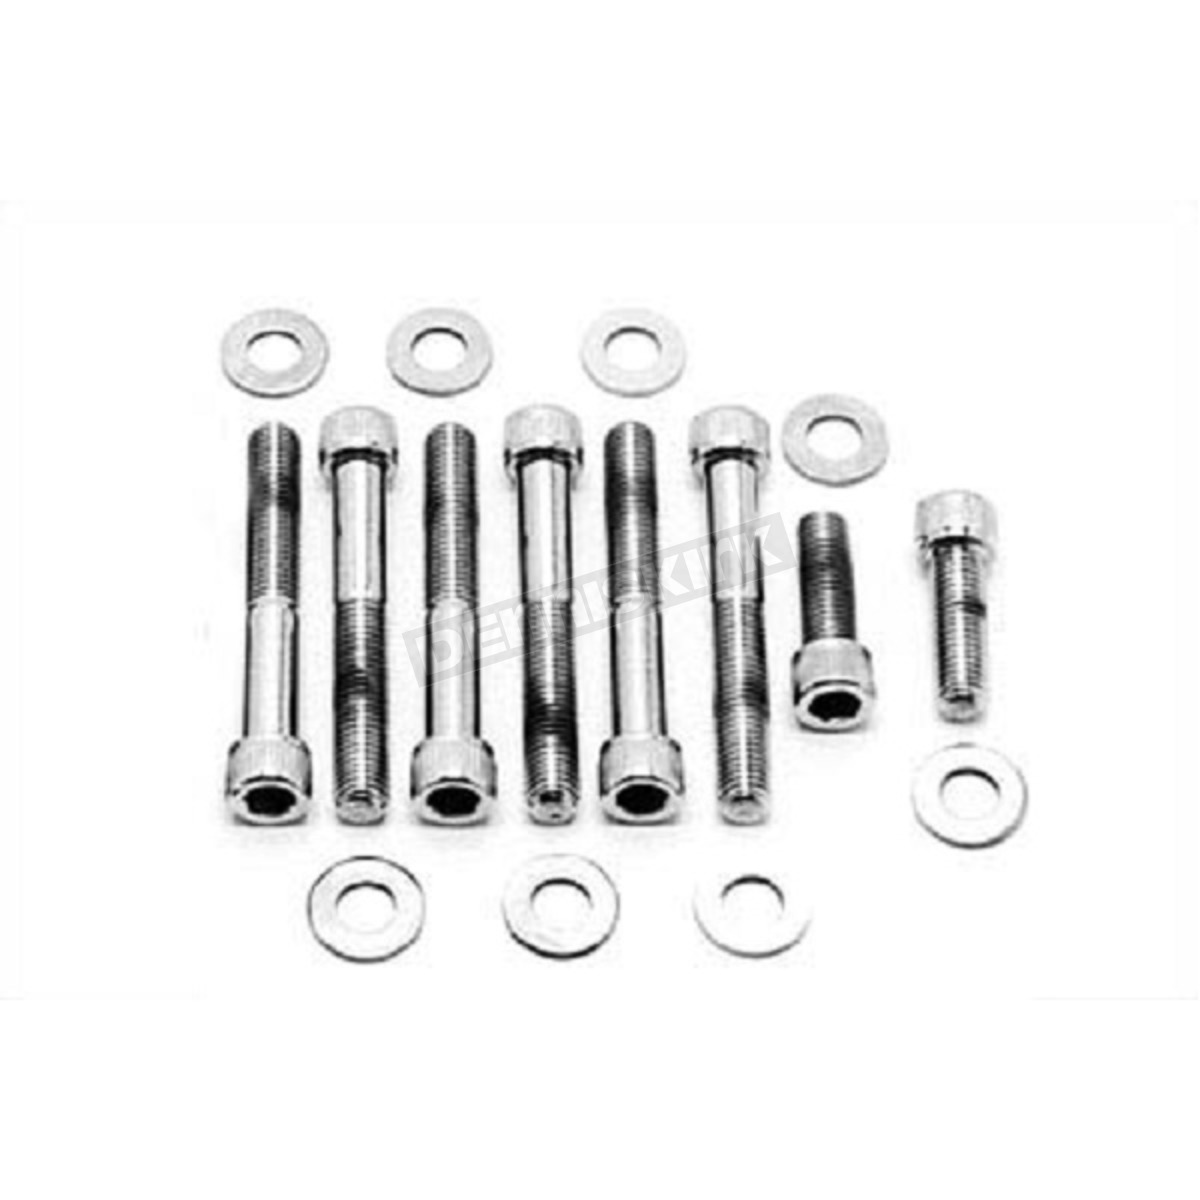 Chrome Rear Fender Strut Allen Bolt Kit - 37-9050